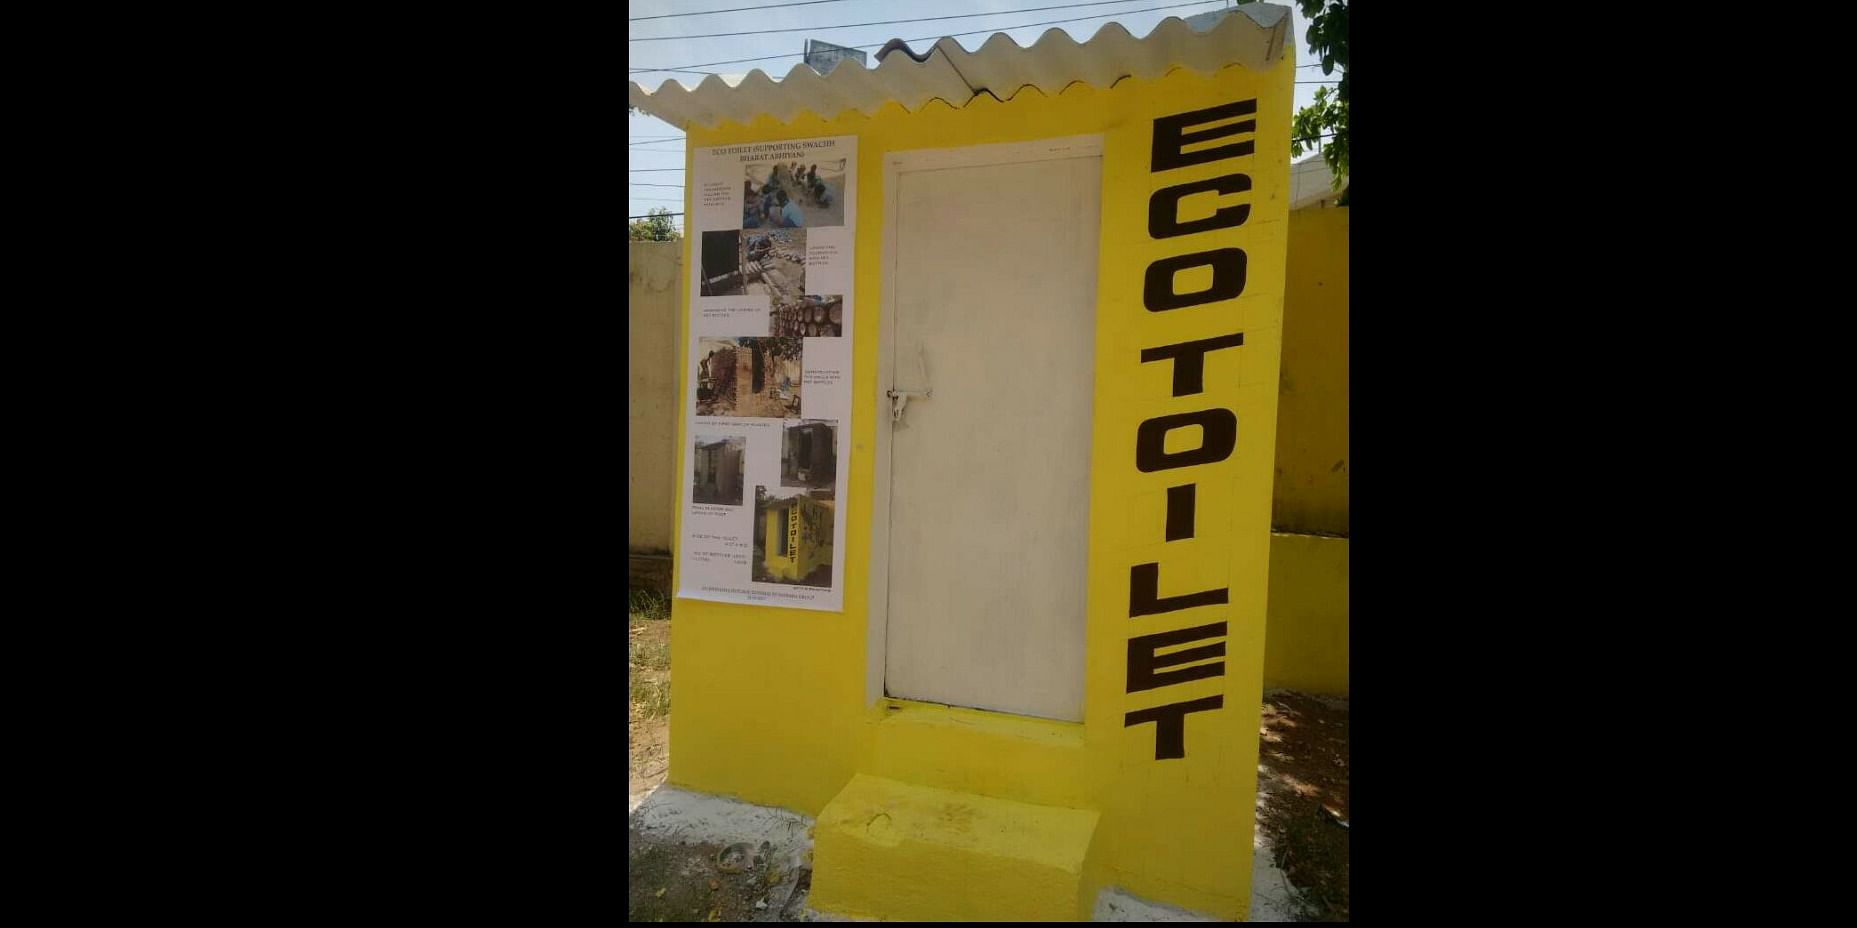 FINISHED IMAGE OF TOILET(SOUTH SIDE)